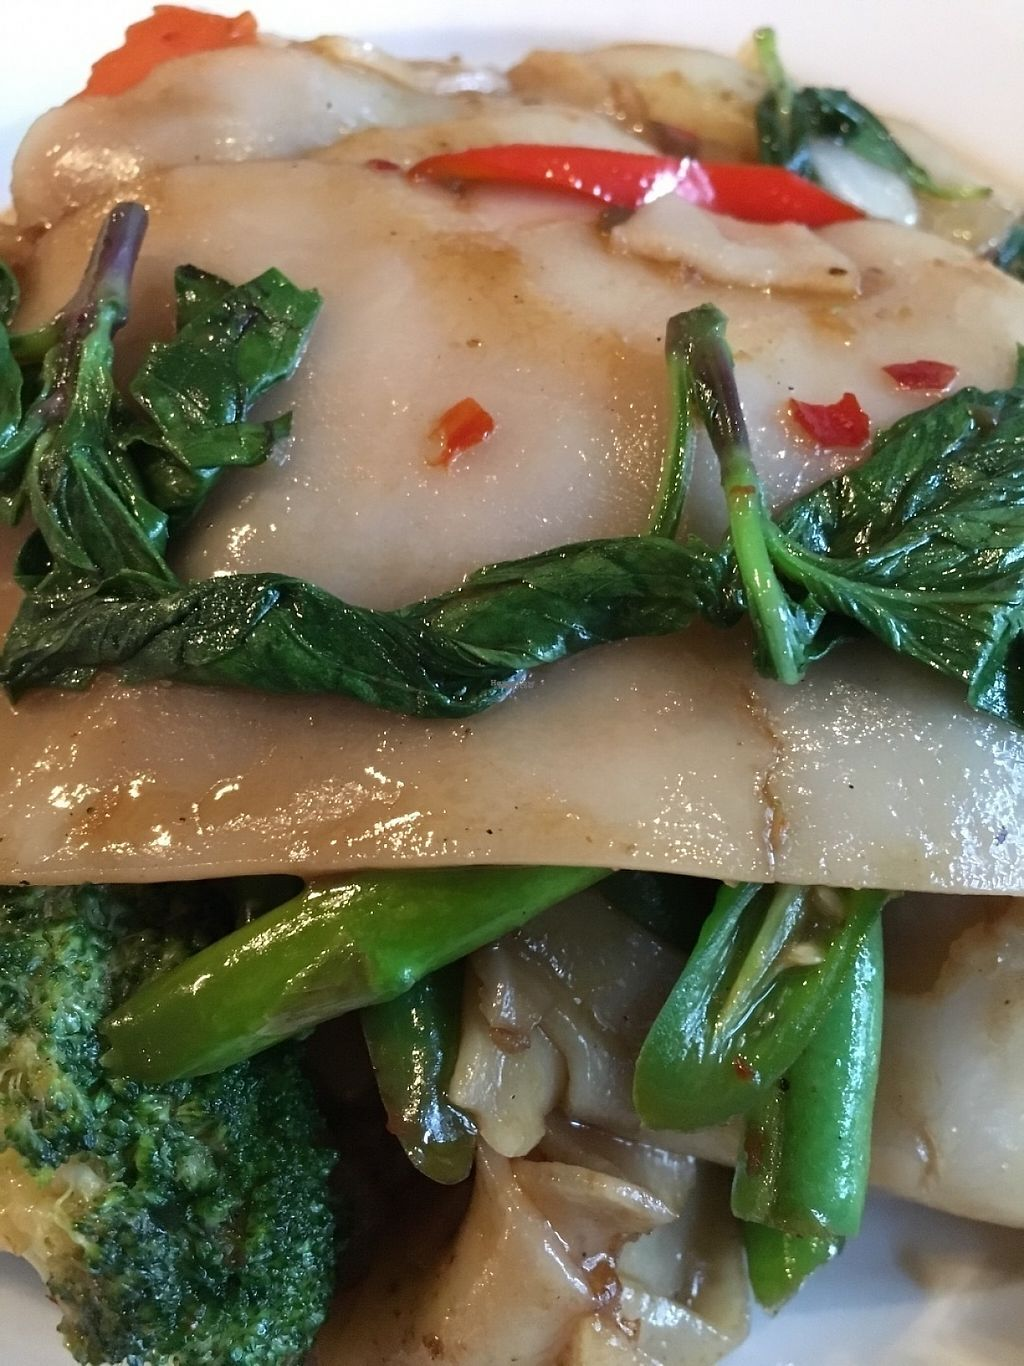 """Photo of Beau Thai - Mount Pleasant  by <a href=""""/members/profile/cookiem"""">cookiem</a> <br/>Drunken noodles <br/> January 27, 2017  - <a href='/contact/abuse/image/84549/217966'>Report</a>"""